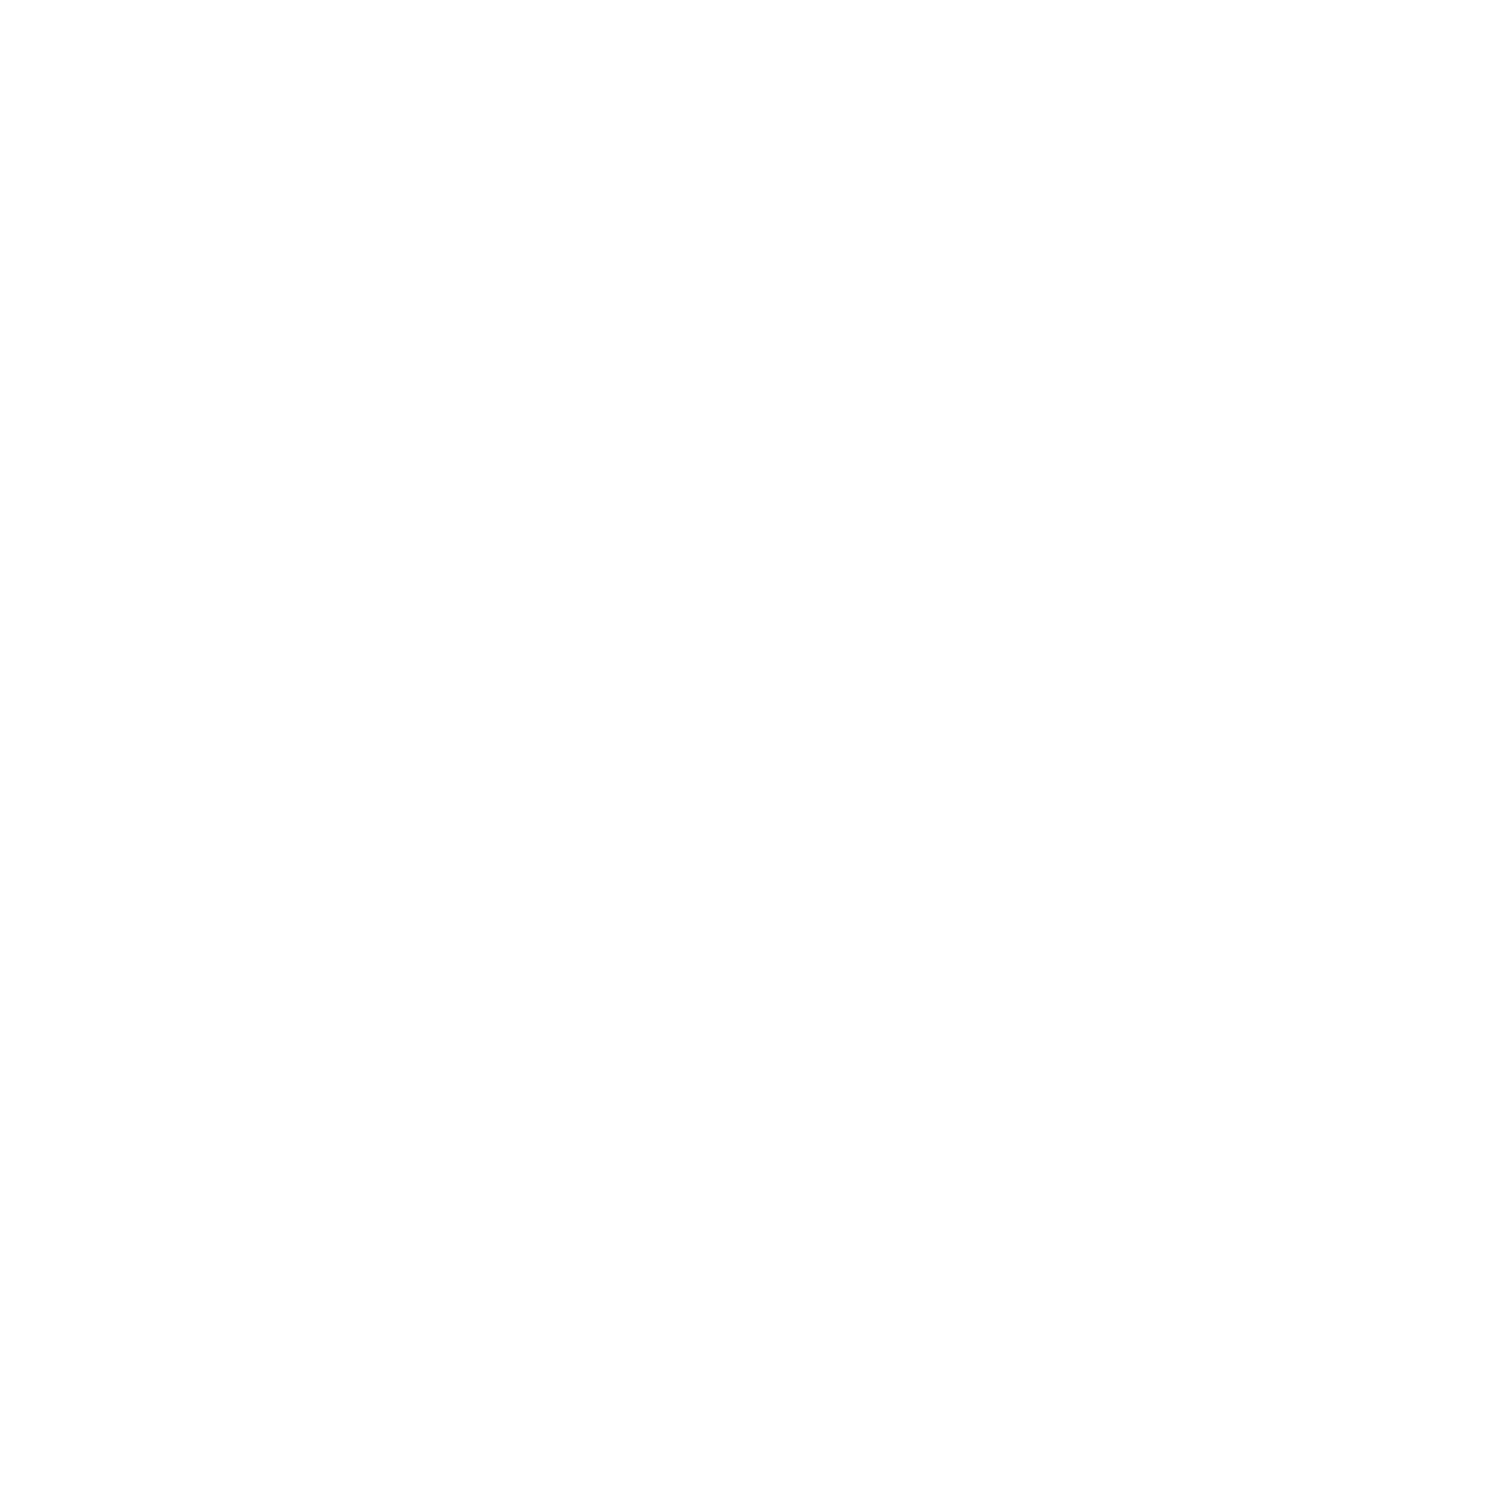 The Scruggs Law Firm